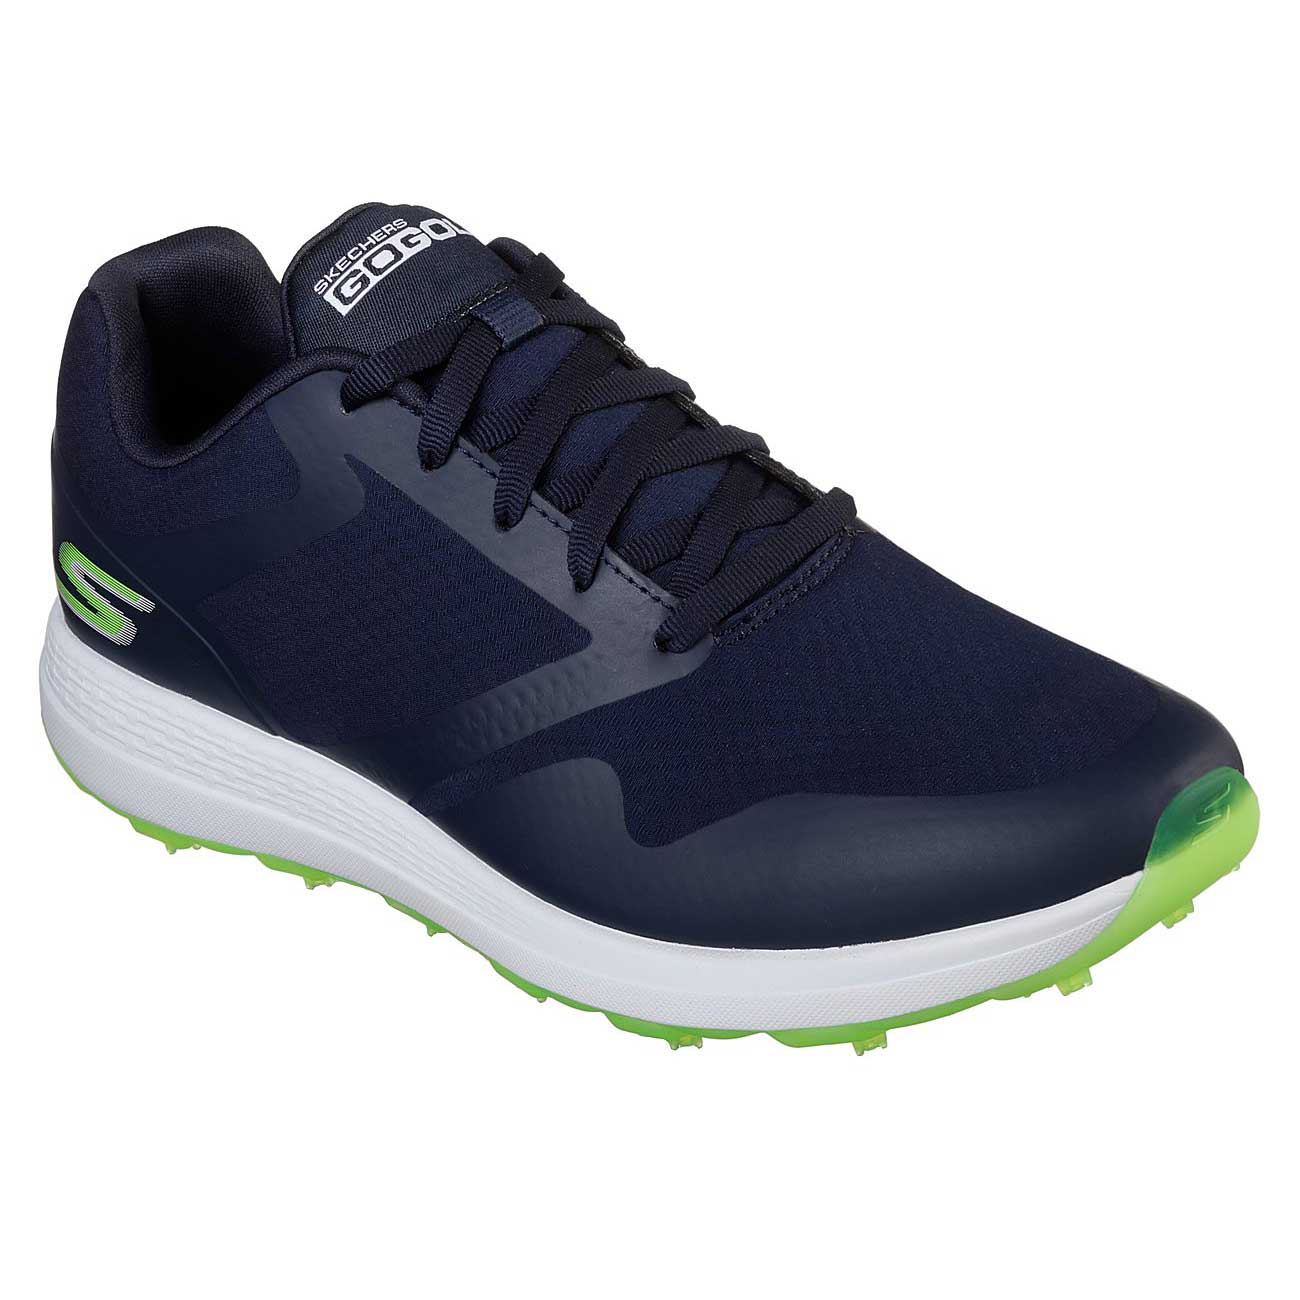 Skechers Women's Go Golf Max Fade Navy/Green Golf Shoe